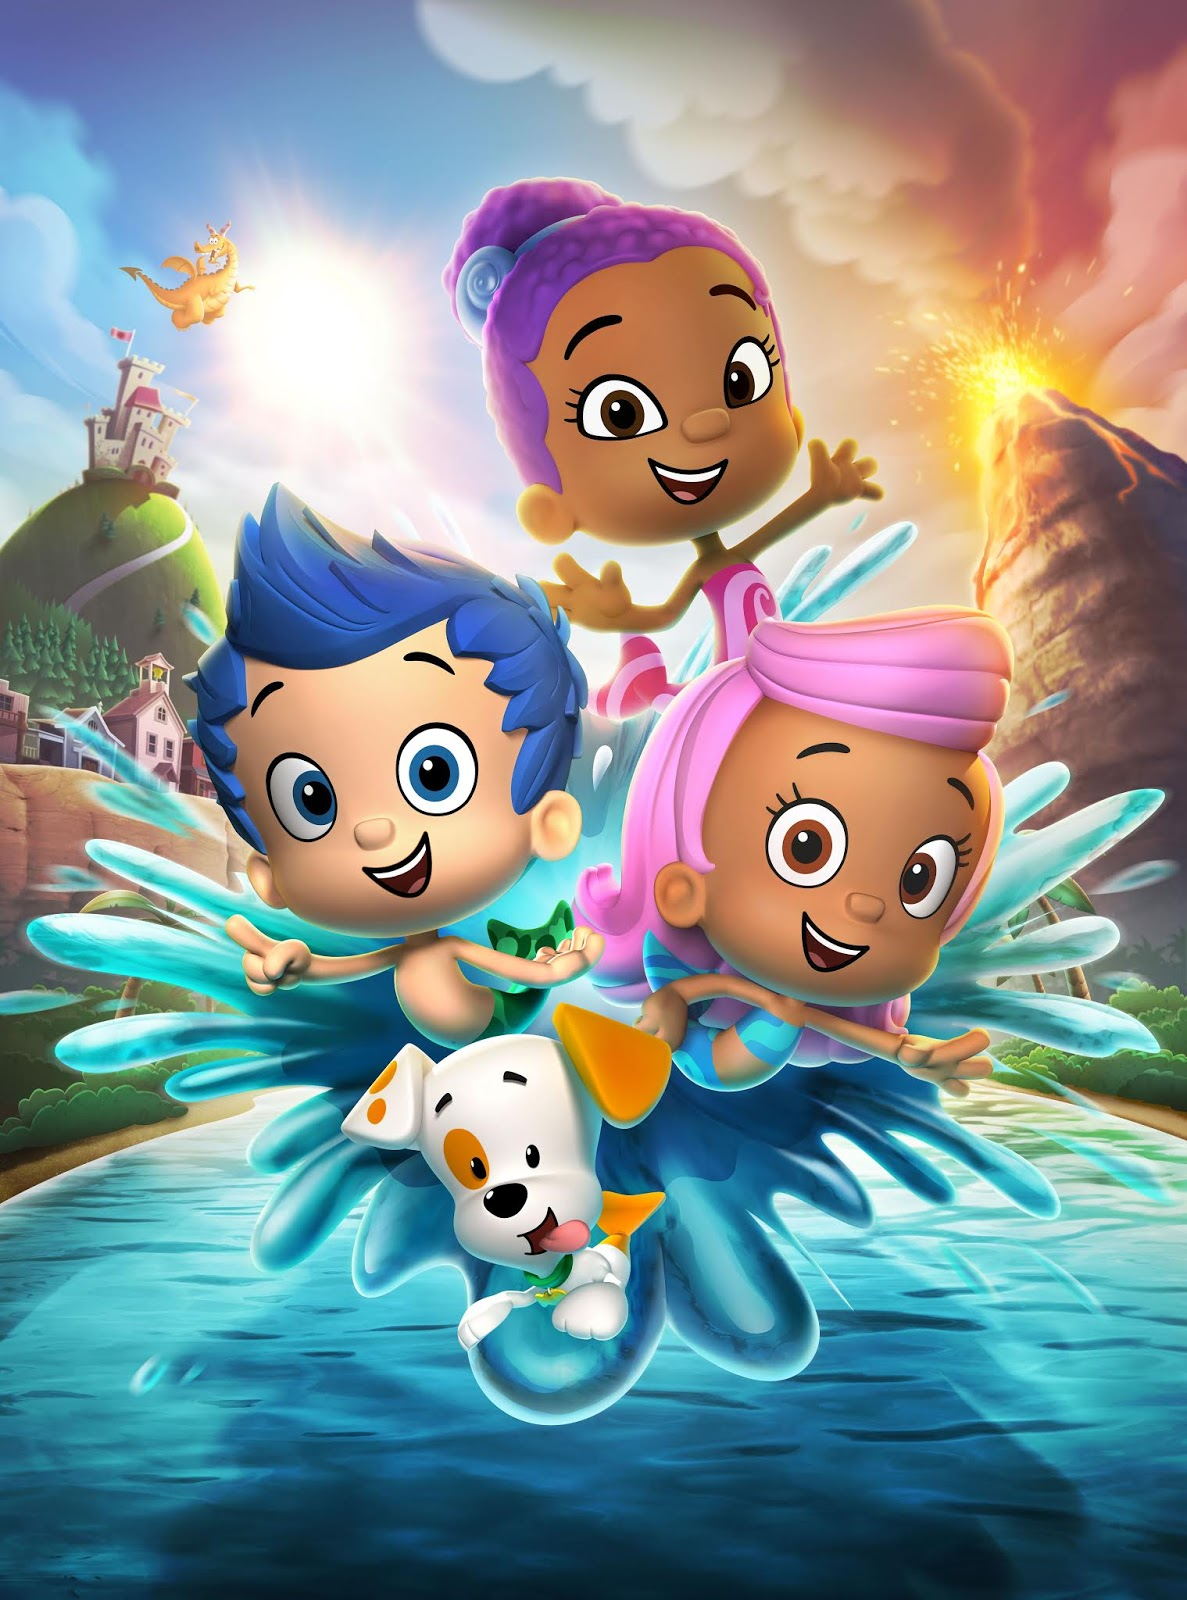 Youtube Tv Nick Jr : youtube, NickALive!:, Australia, Premiere, 'Bubble, Guppies', Season, Monday, February